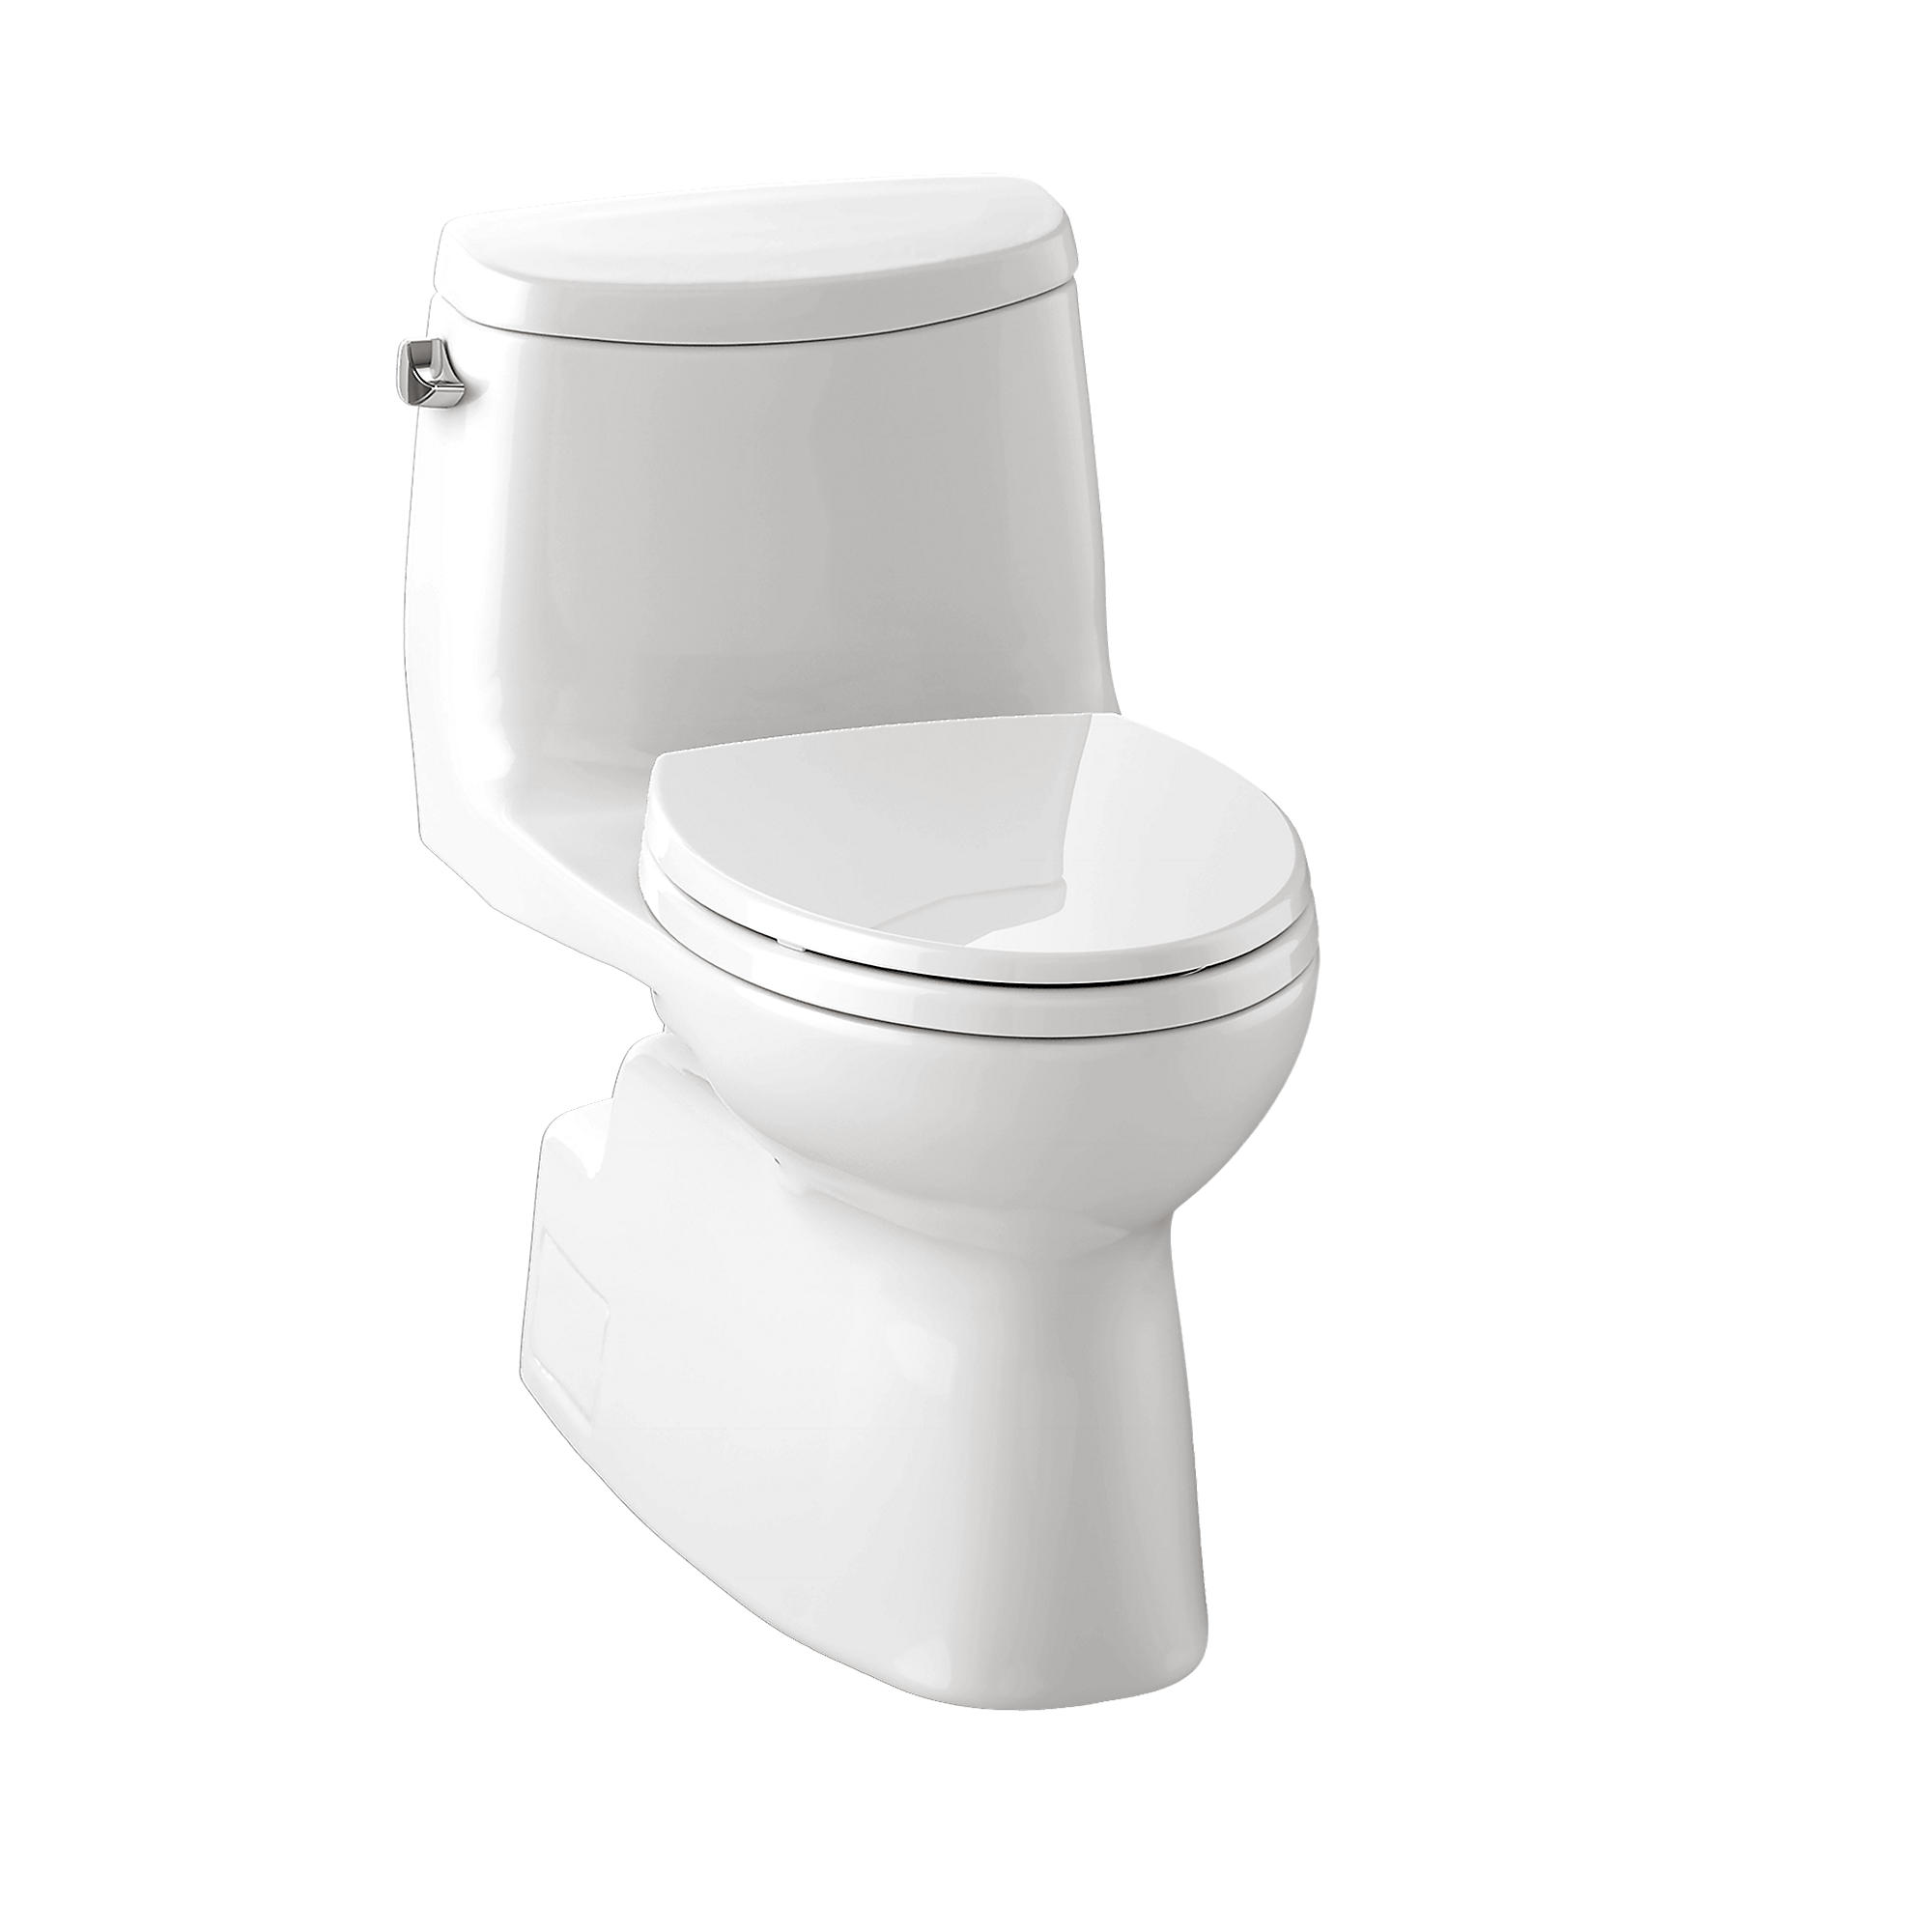 Ms614114cefg 01 carlyle  ii one piece toilet  1 28 gpf  elongated bowl 0